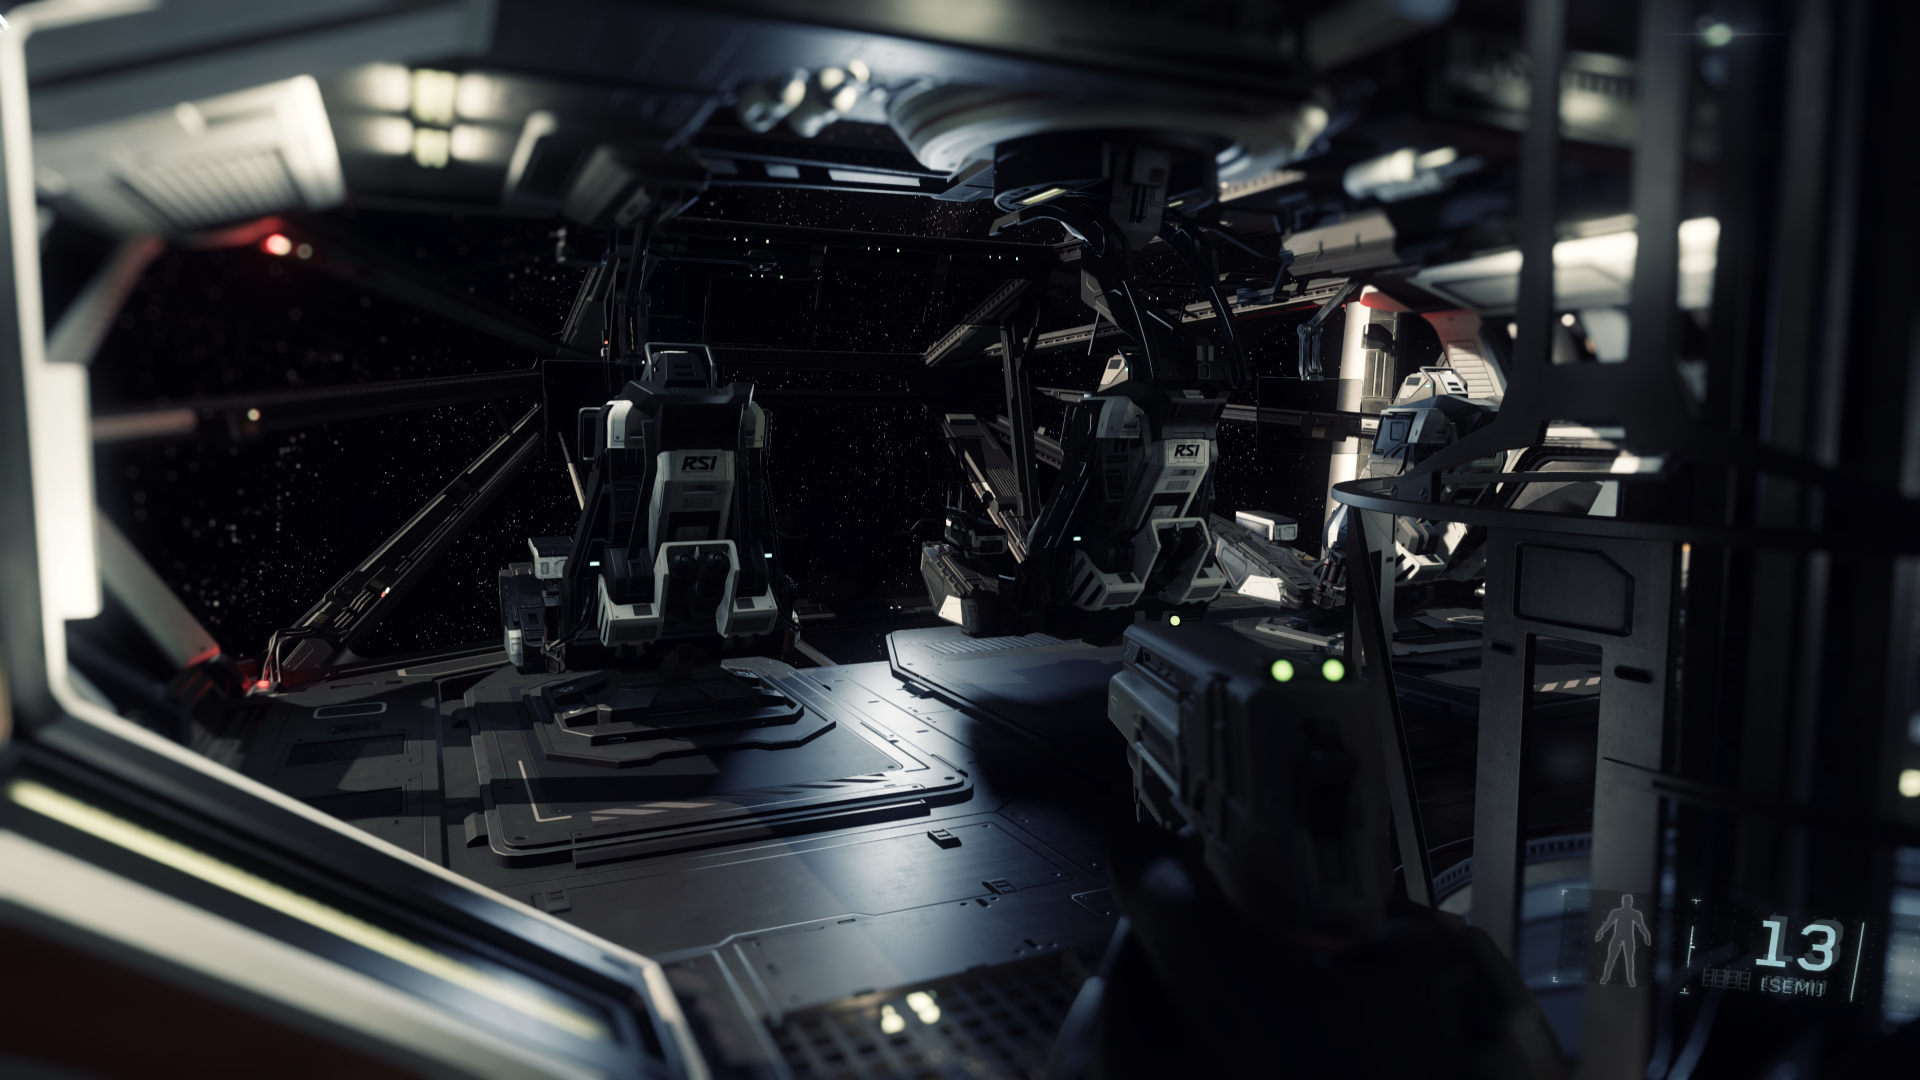 starcitizen_2016_03_02os7h.png